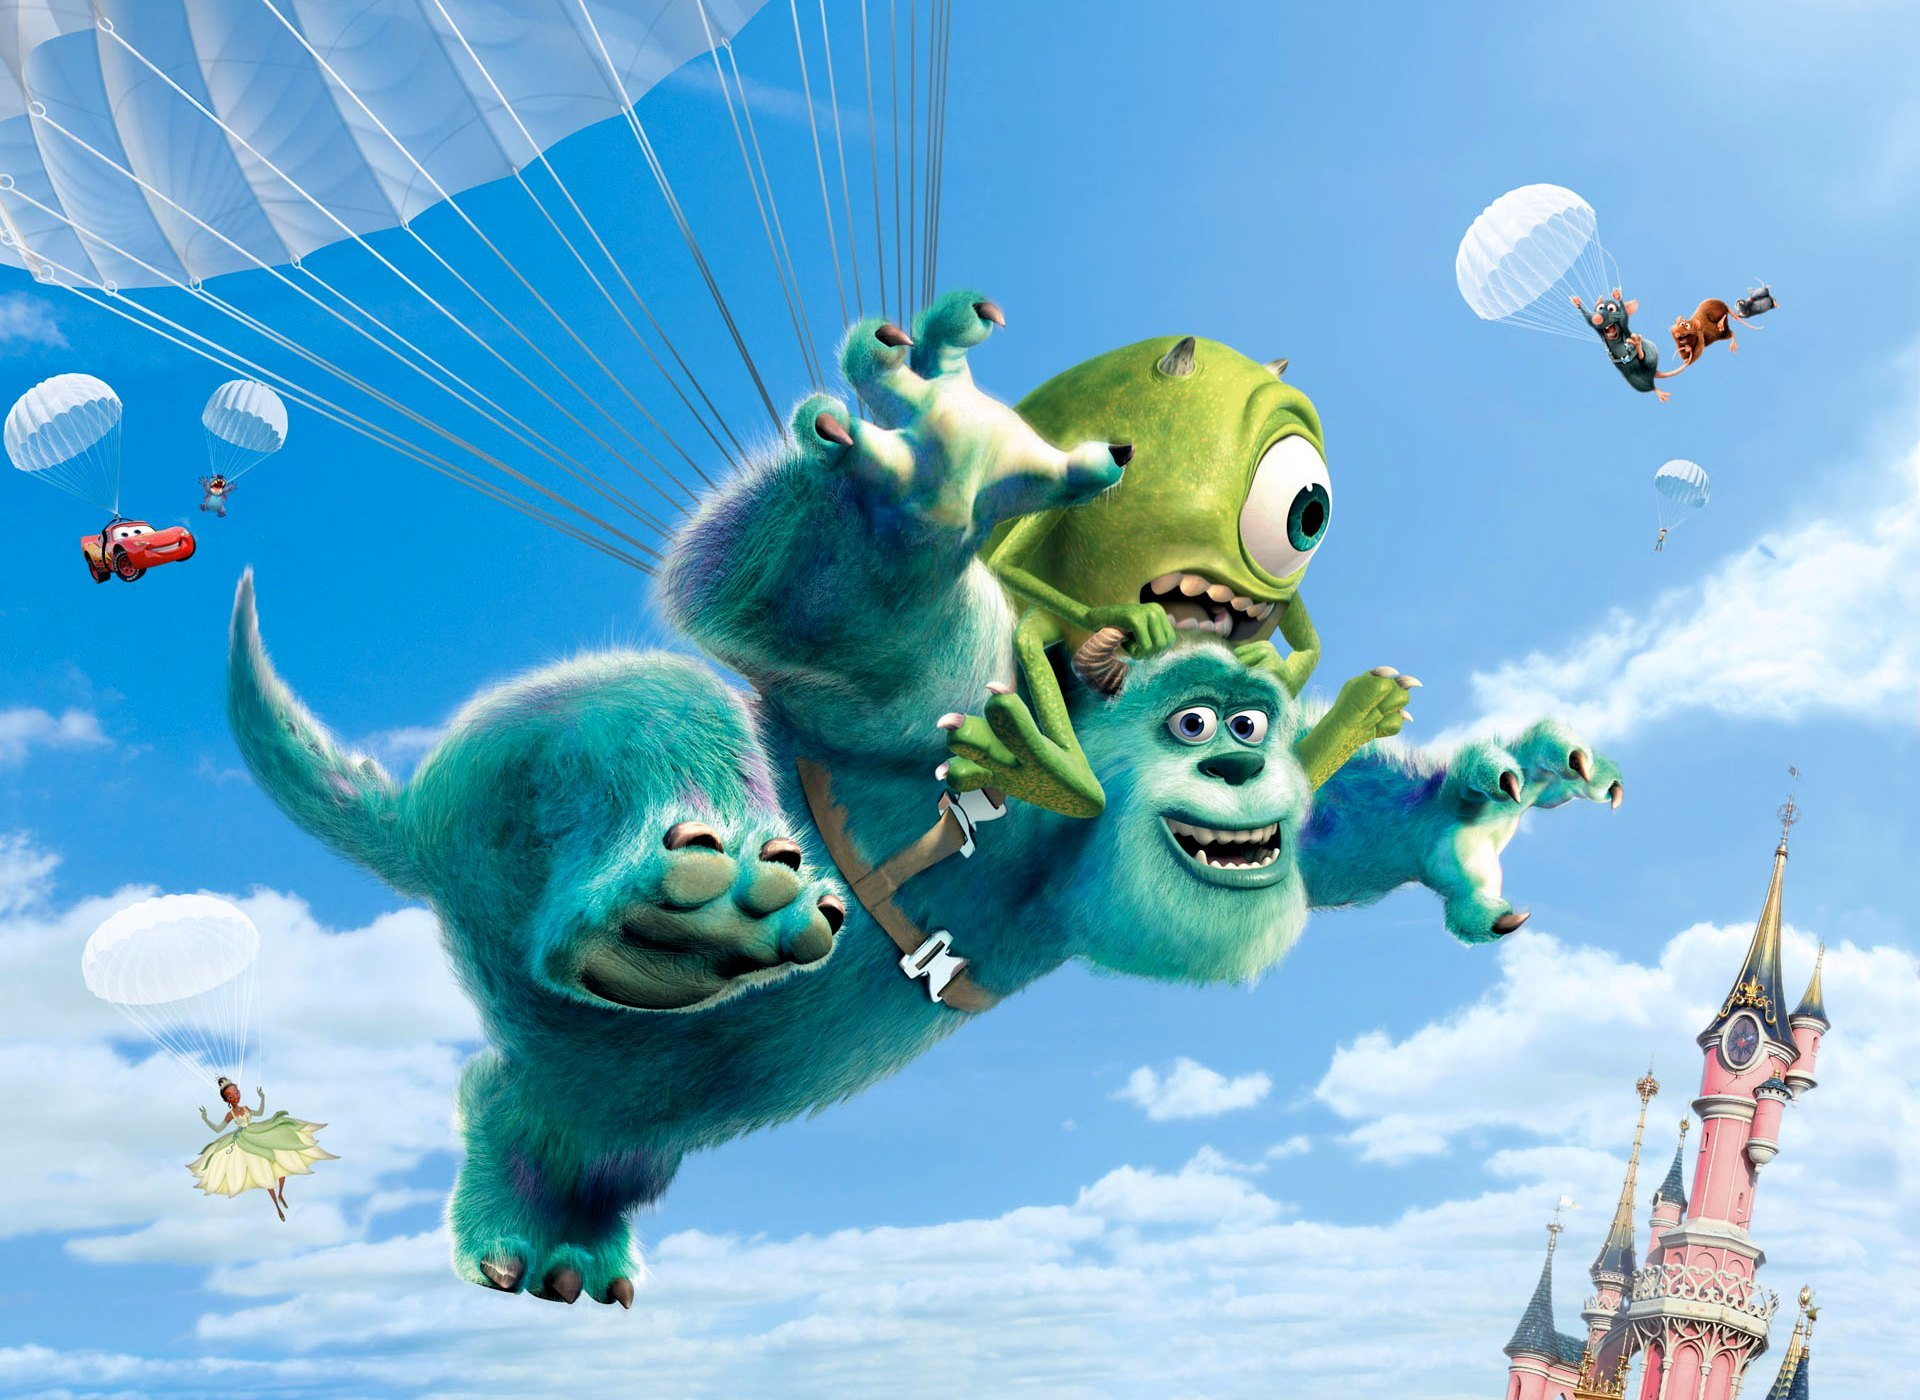 Wallpaper iphone monster university - Movie Monsters University Mike Wazowski James P Sullivan Wallpaper